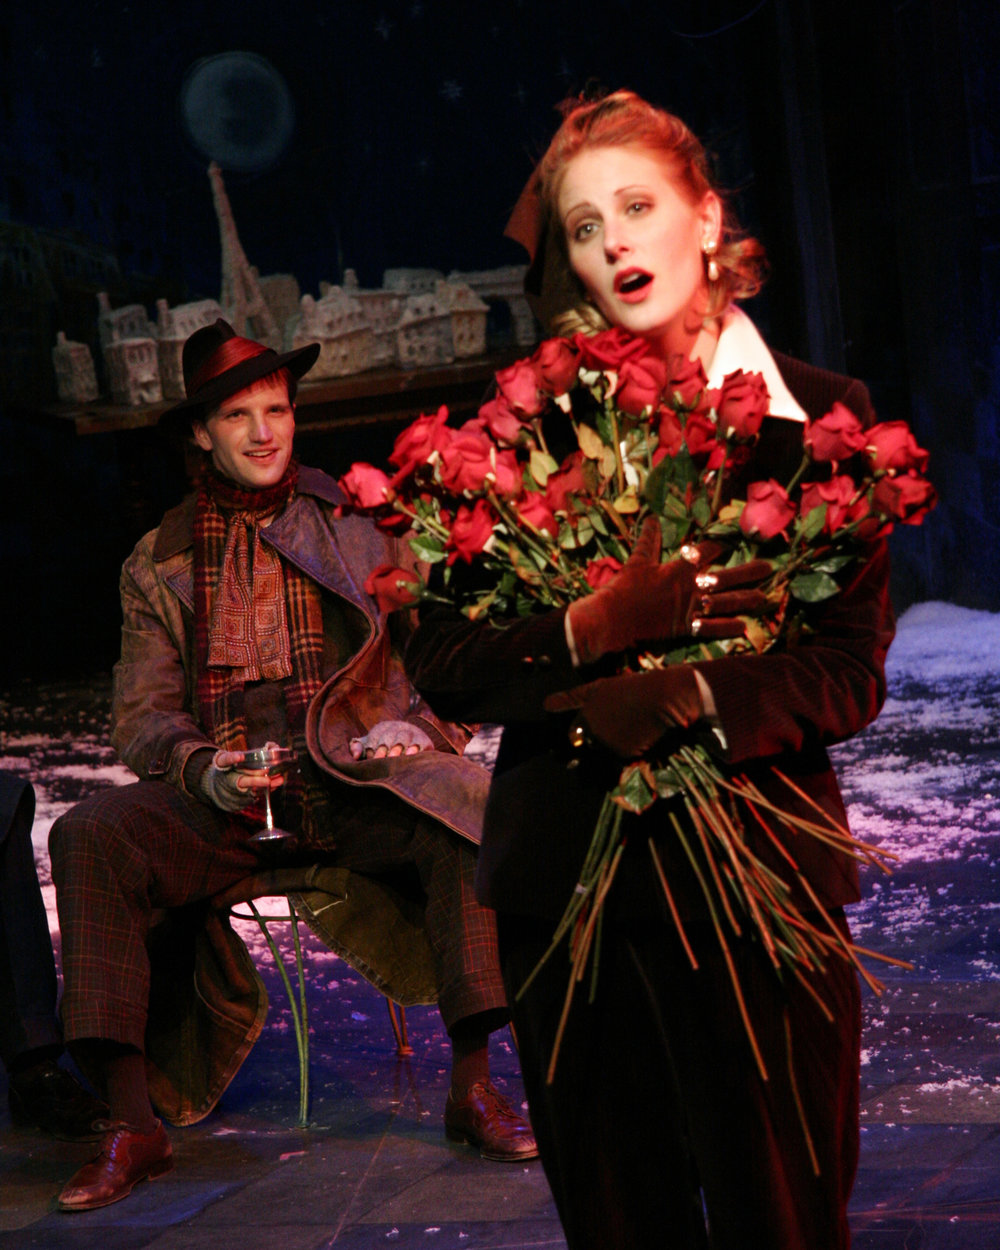 LA BOHÈME, Theater Latté Da at the Loring Playhouse, 2005 and 2007